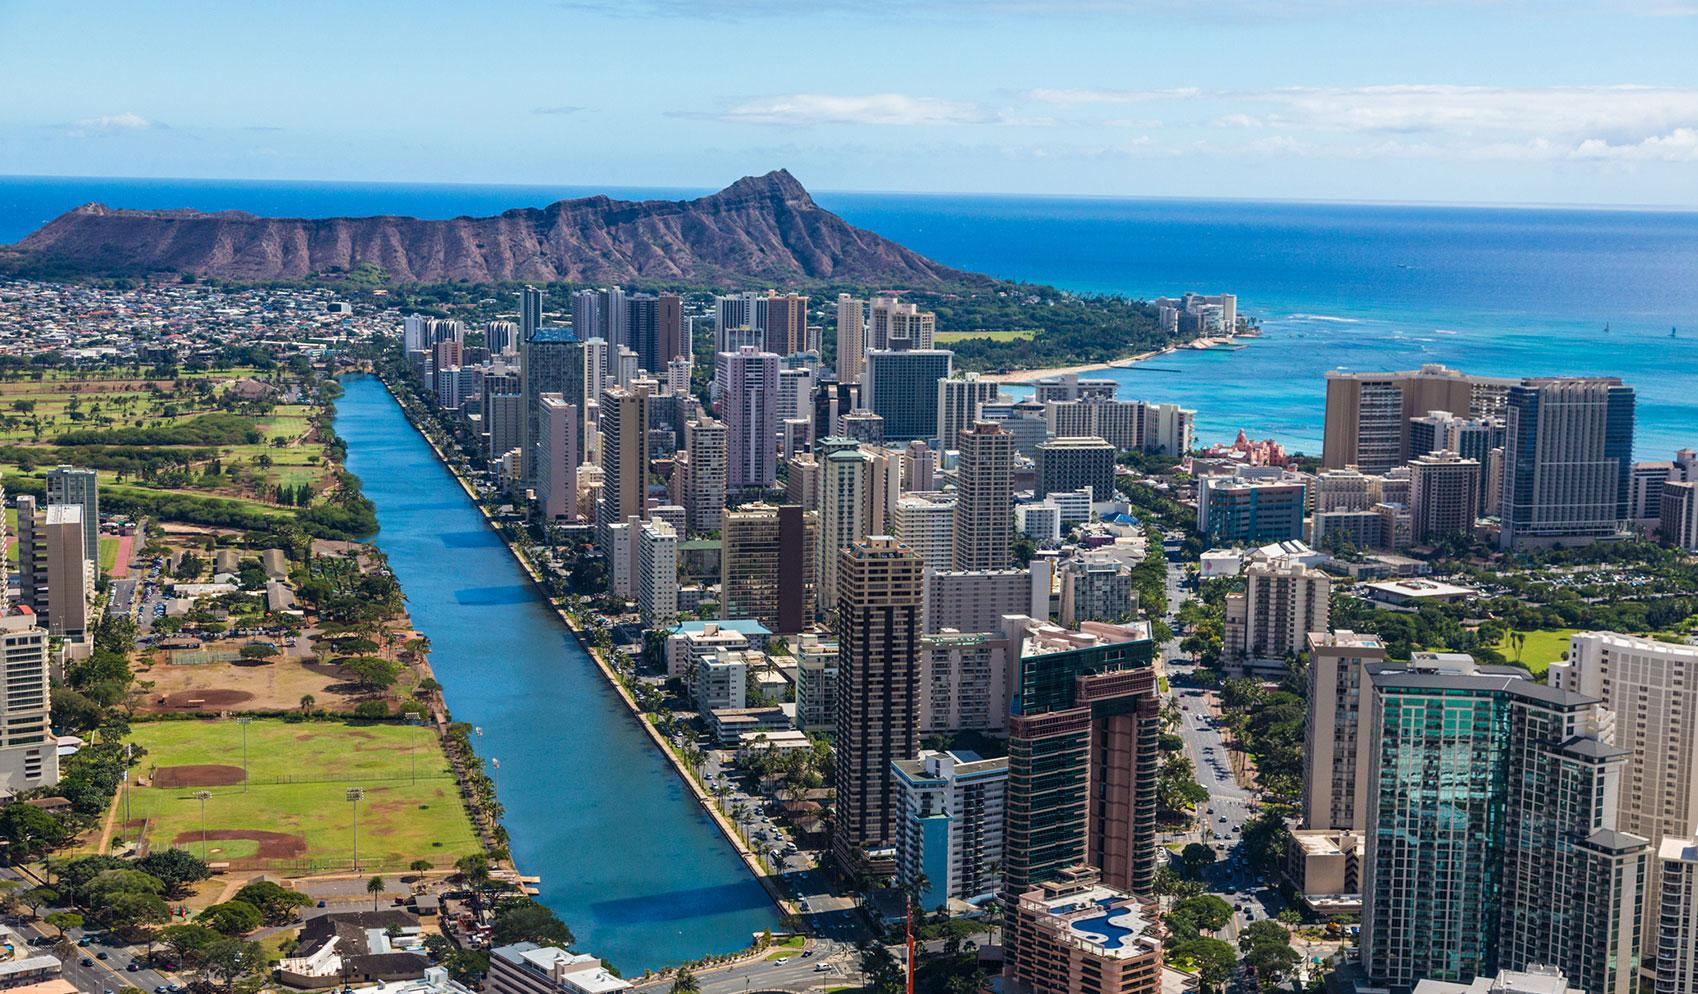 Oahu, known as